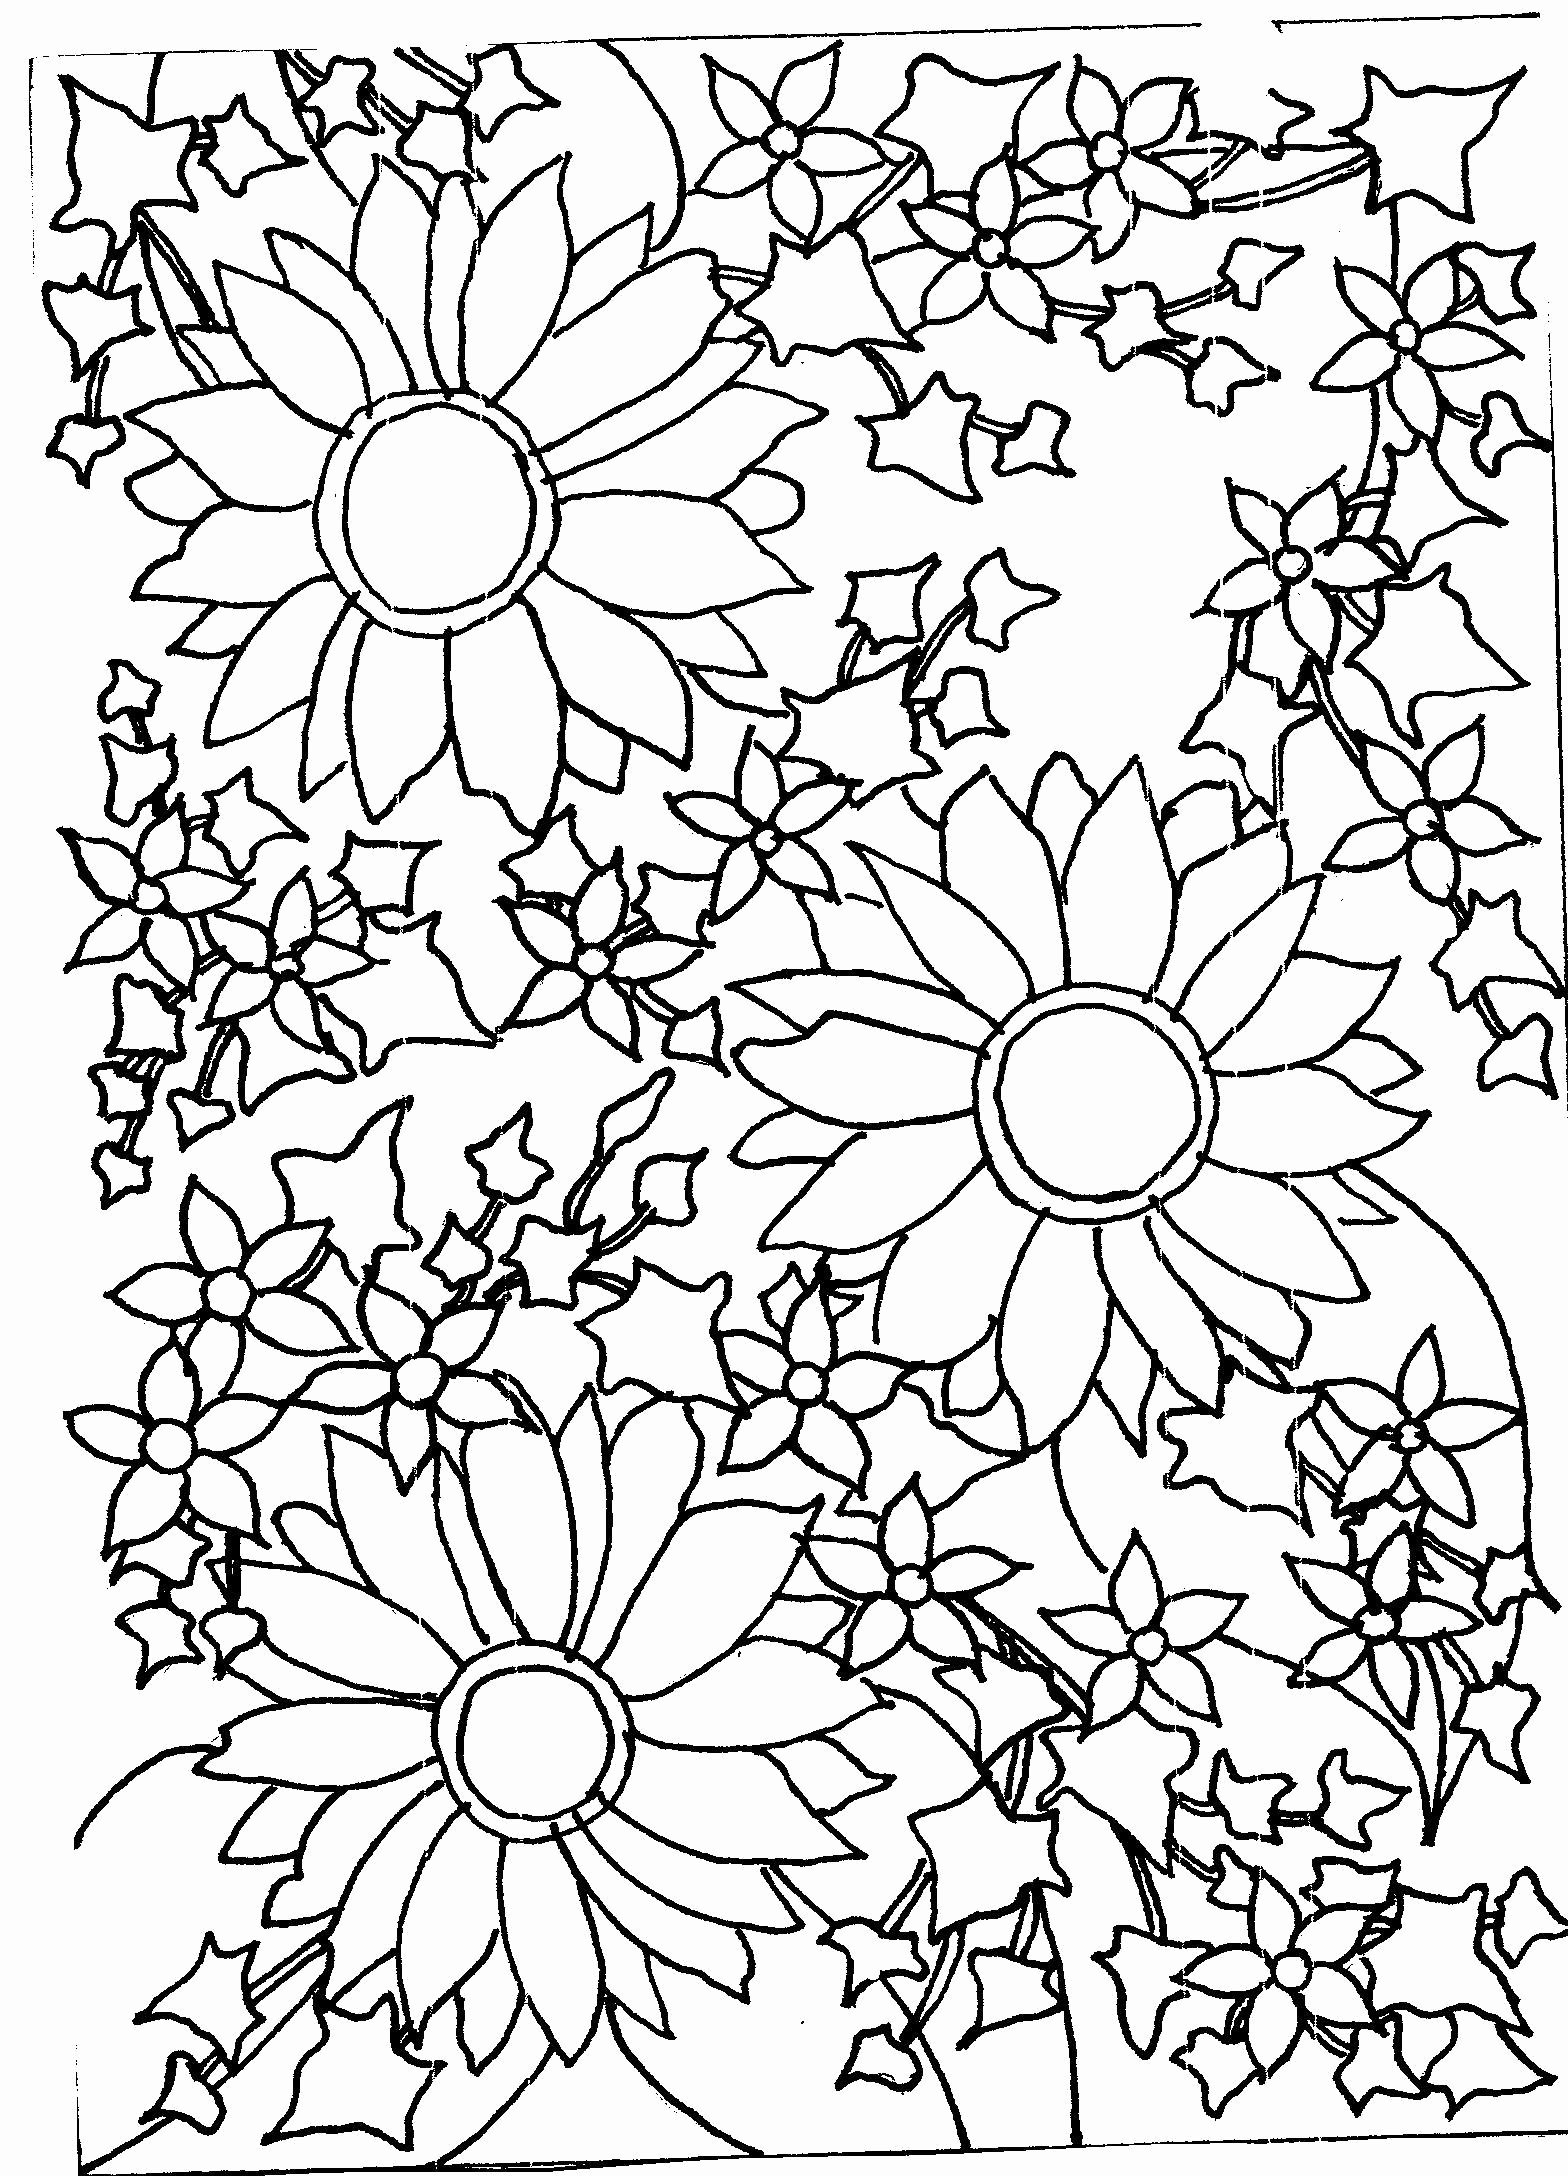 Black and White Flower Drawing Beautiful Sunflowers